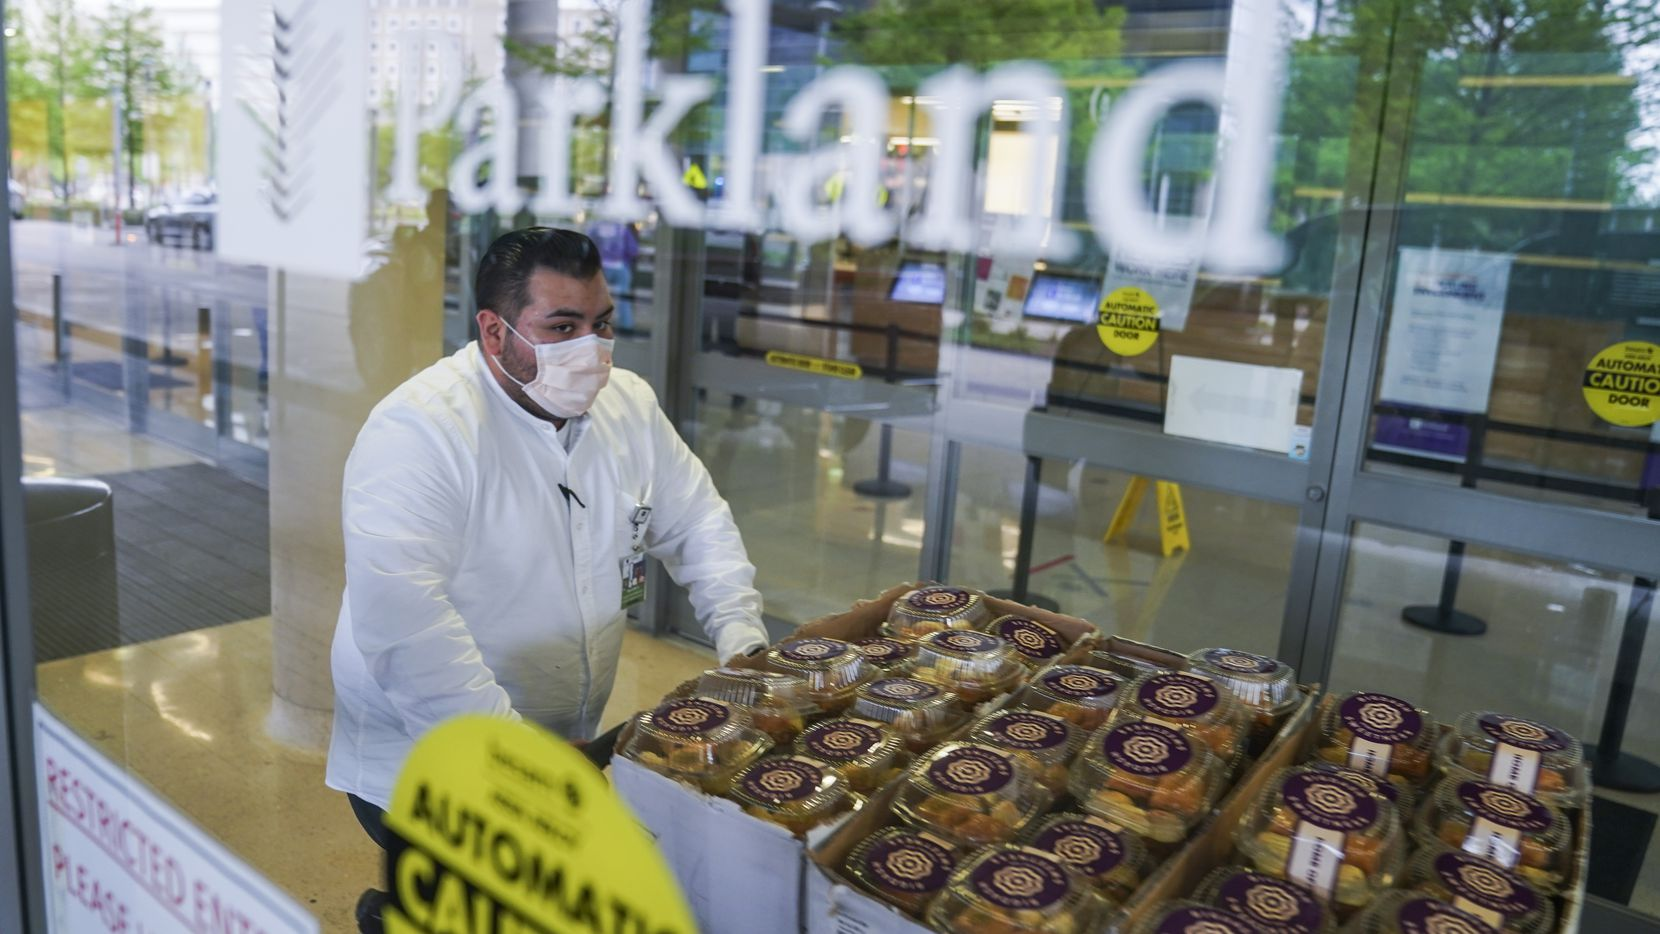 Guest services representative Nahum Hernandez rolls a cart full of desserts from Bigdash Ice Cream & Pastries through the main entrance of Parkland Hospital on Friday, April 17, 2020 in Dallas. Restaurants dropped off over 1,000 meals and 1,500 desserts for doctors, nurses and staff  The effort was organized by local Muslim business leaders. (Ashley Landis/The Dallas Morning News)